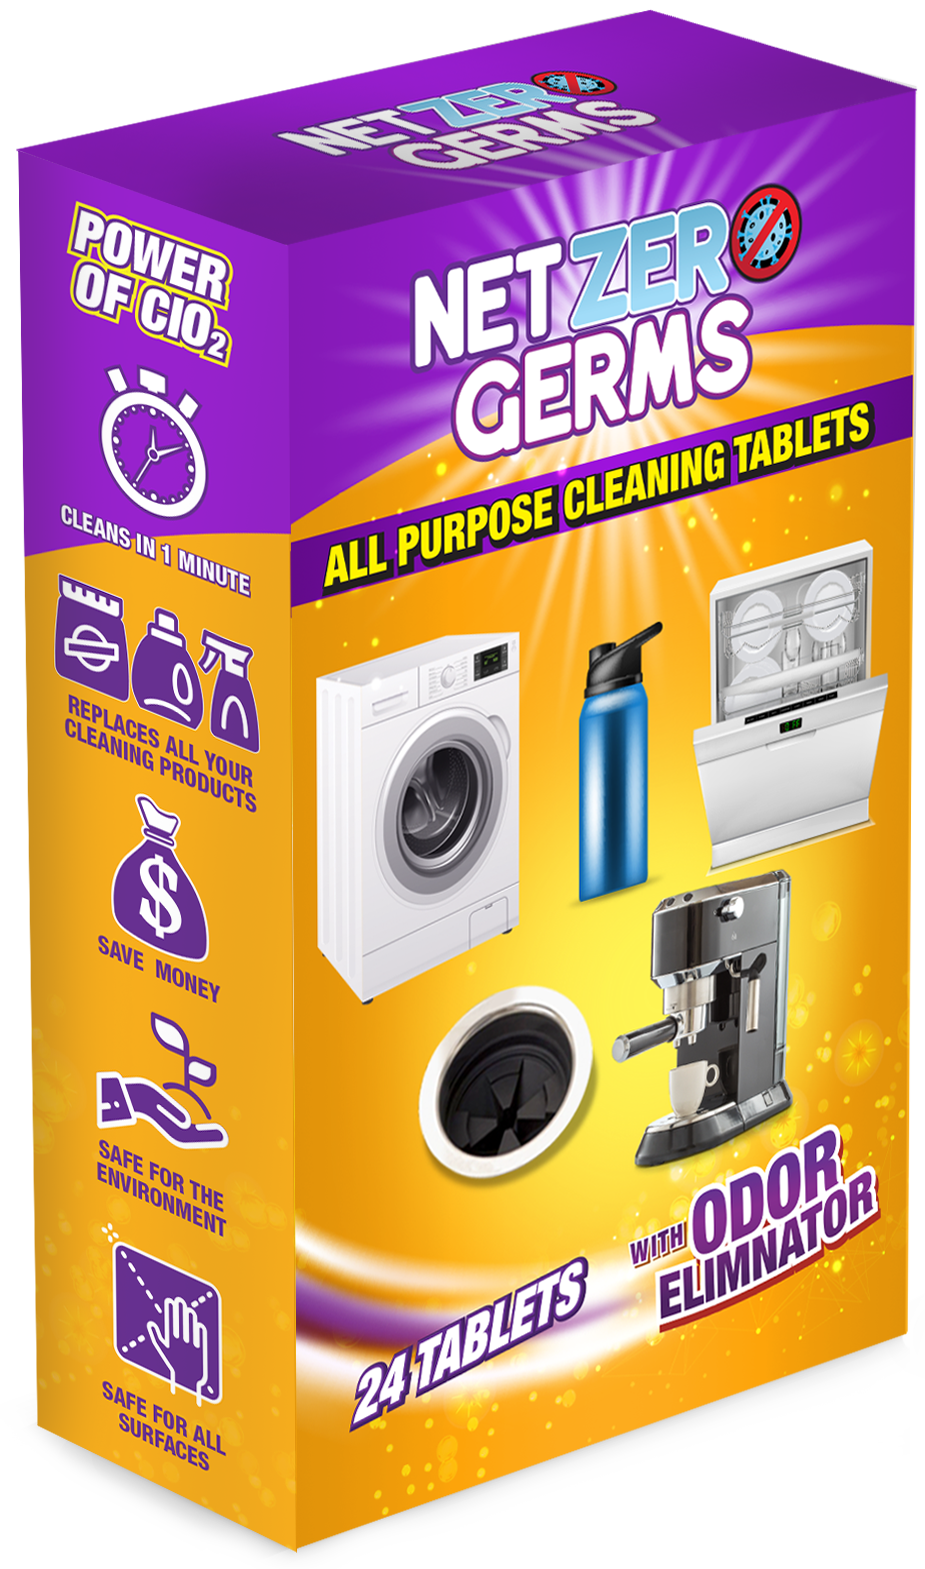 NetZero Germs All Purpose Cleaning Tablets, 24 Tablets